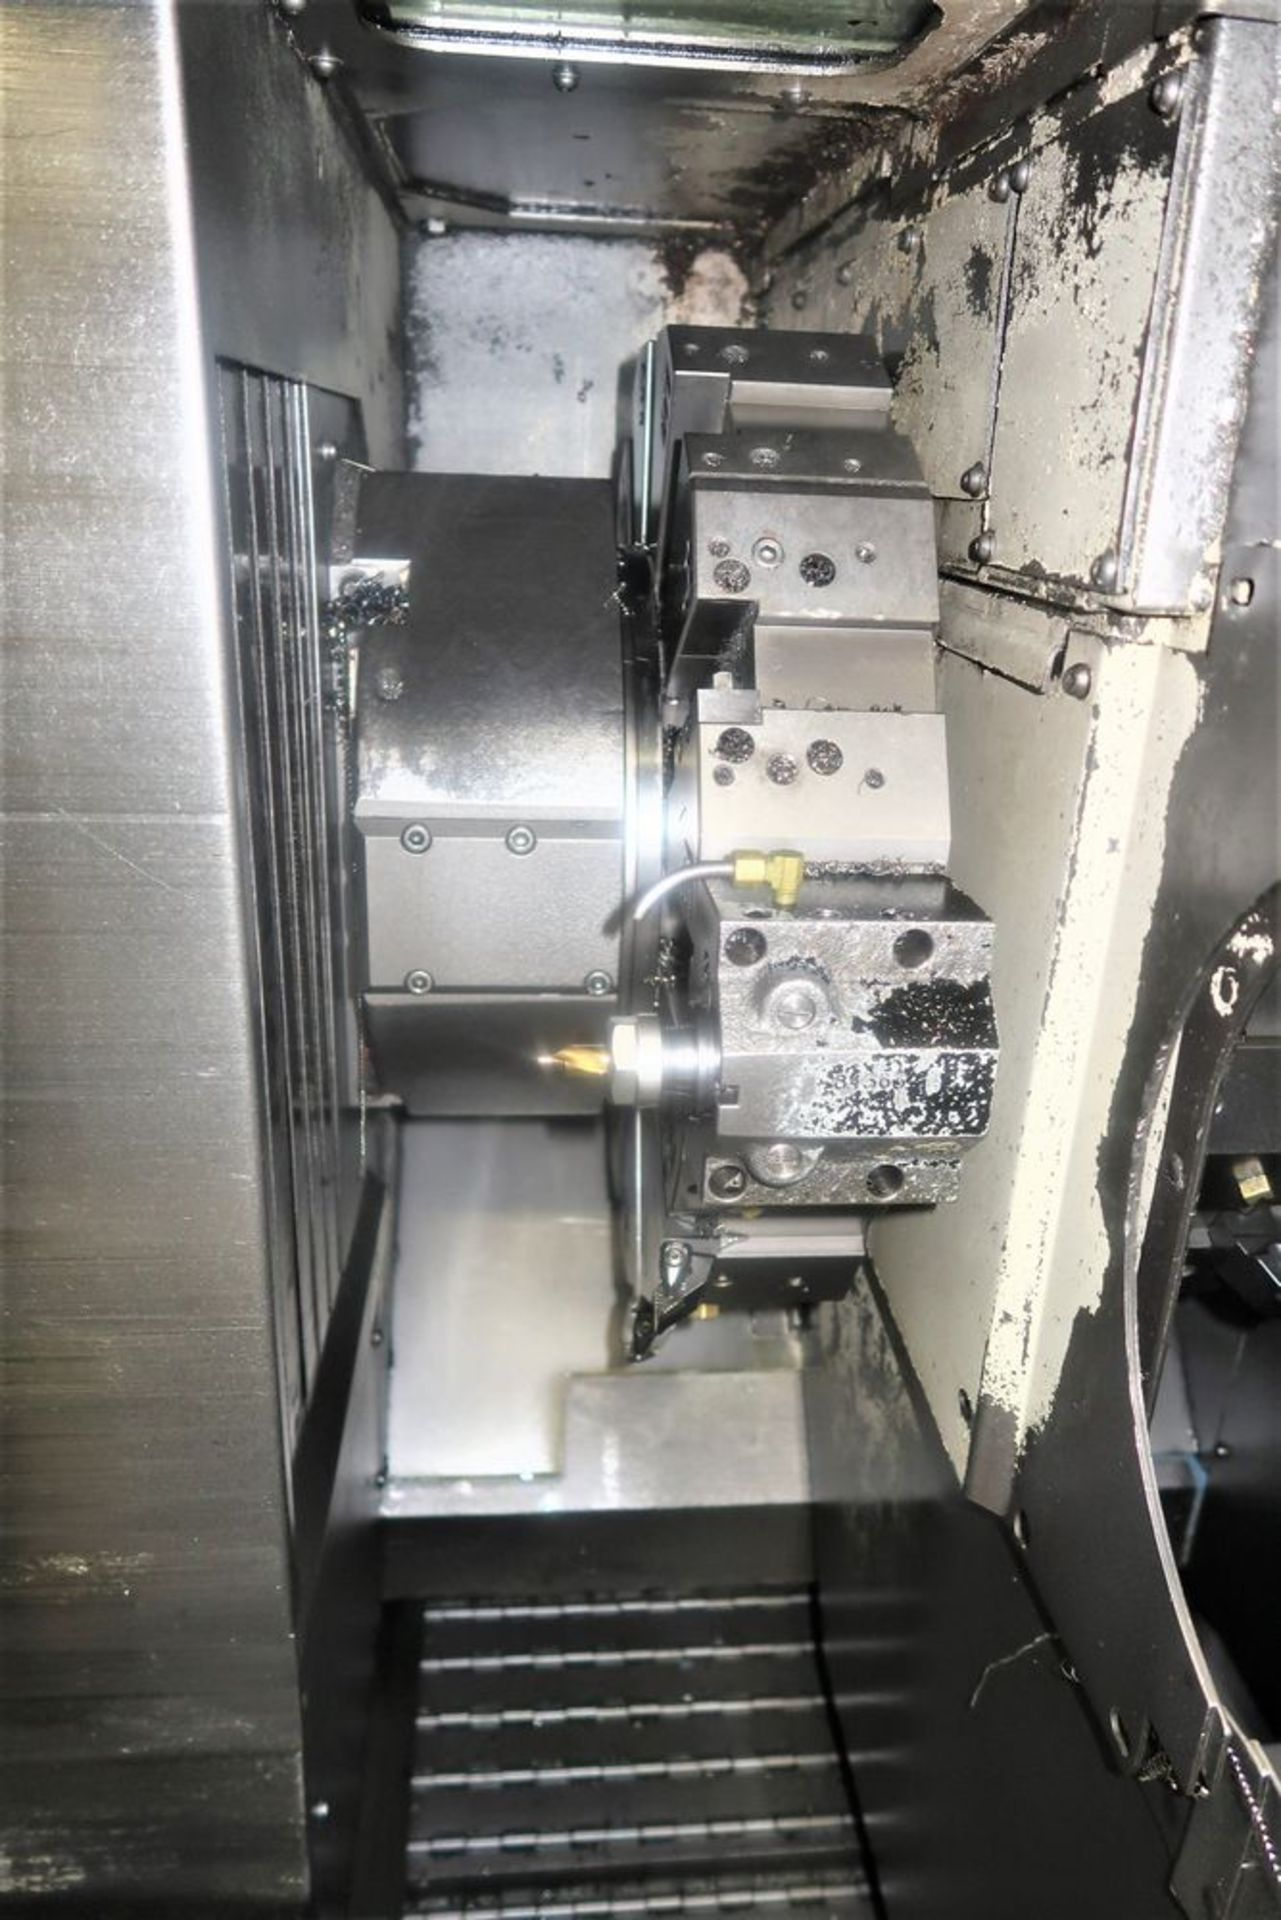 Lot 21 - Mazak Dual Turn 20 Twin Spindle CNC Turning Center Lathe, S/N 151871